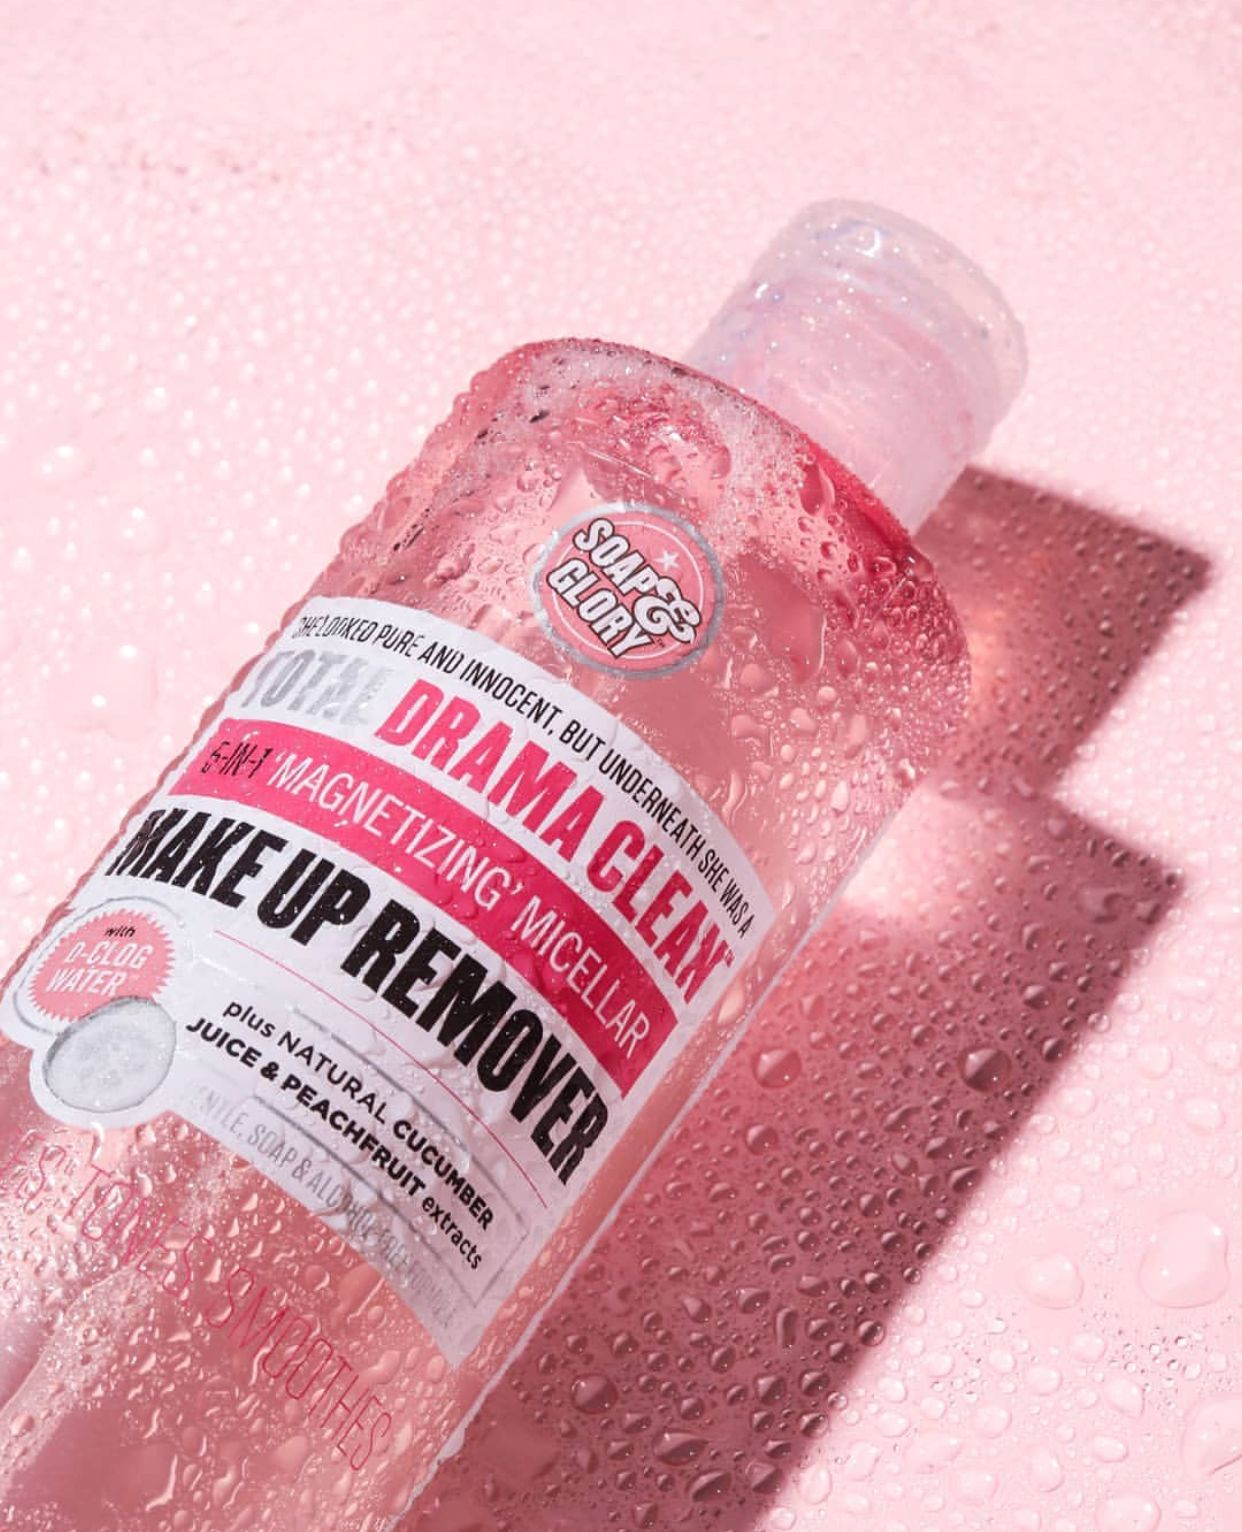 SOAP AND GLORY Makeup remover Soap and glory, Soap and